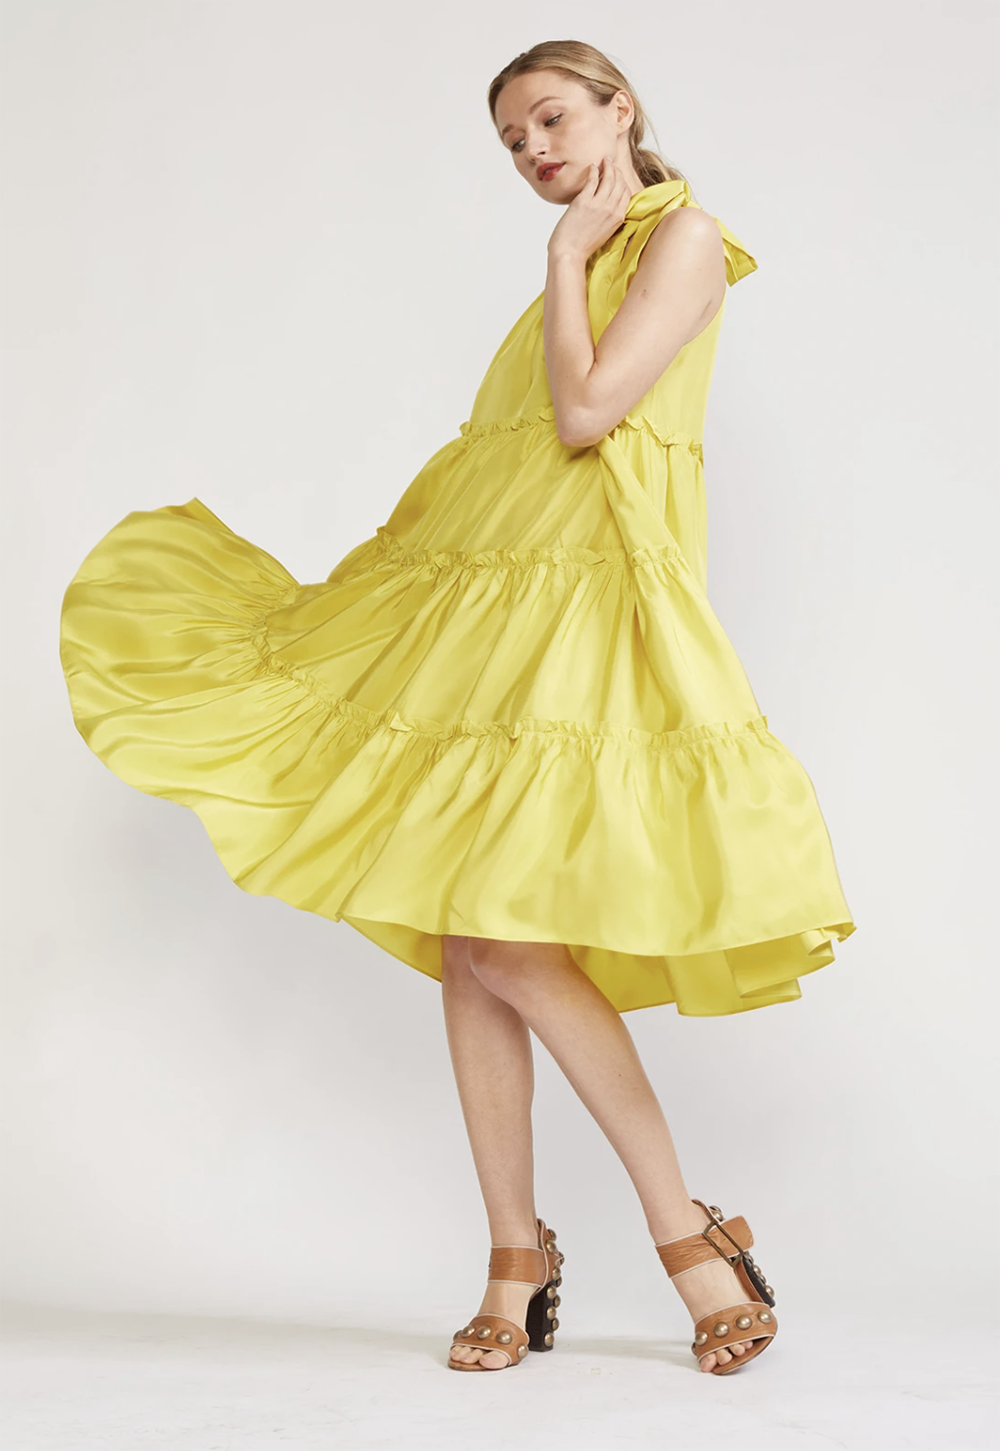 Cynthia Rowley Summer 2021 Styles I Yellow Tiered Halter Dress #summerstyle